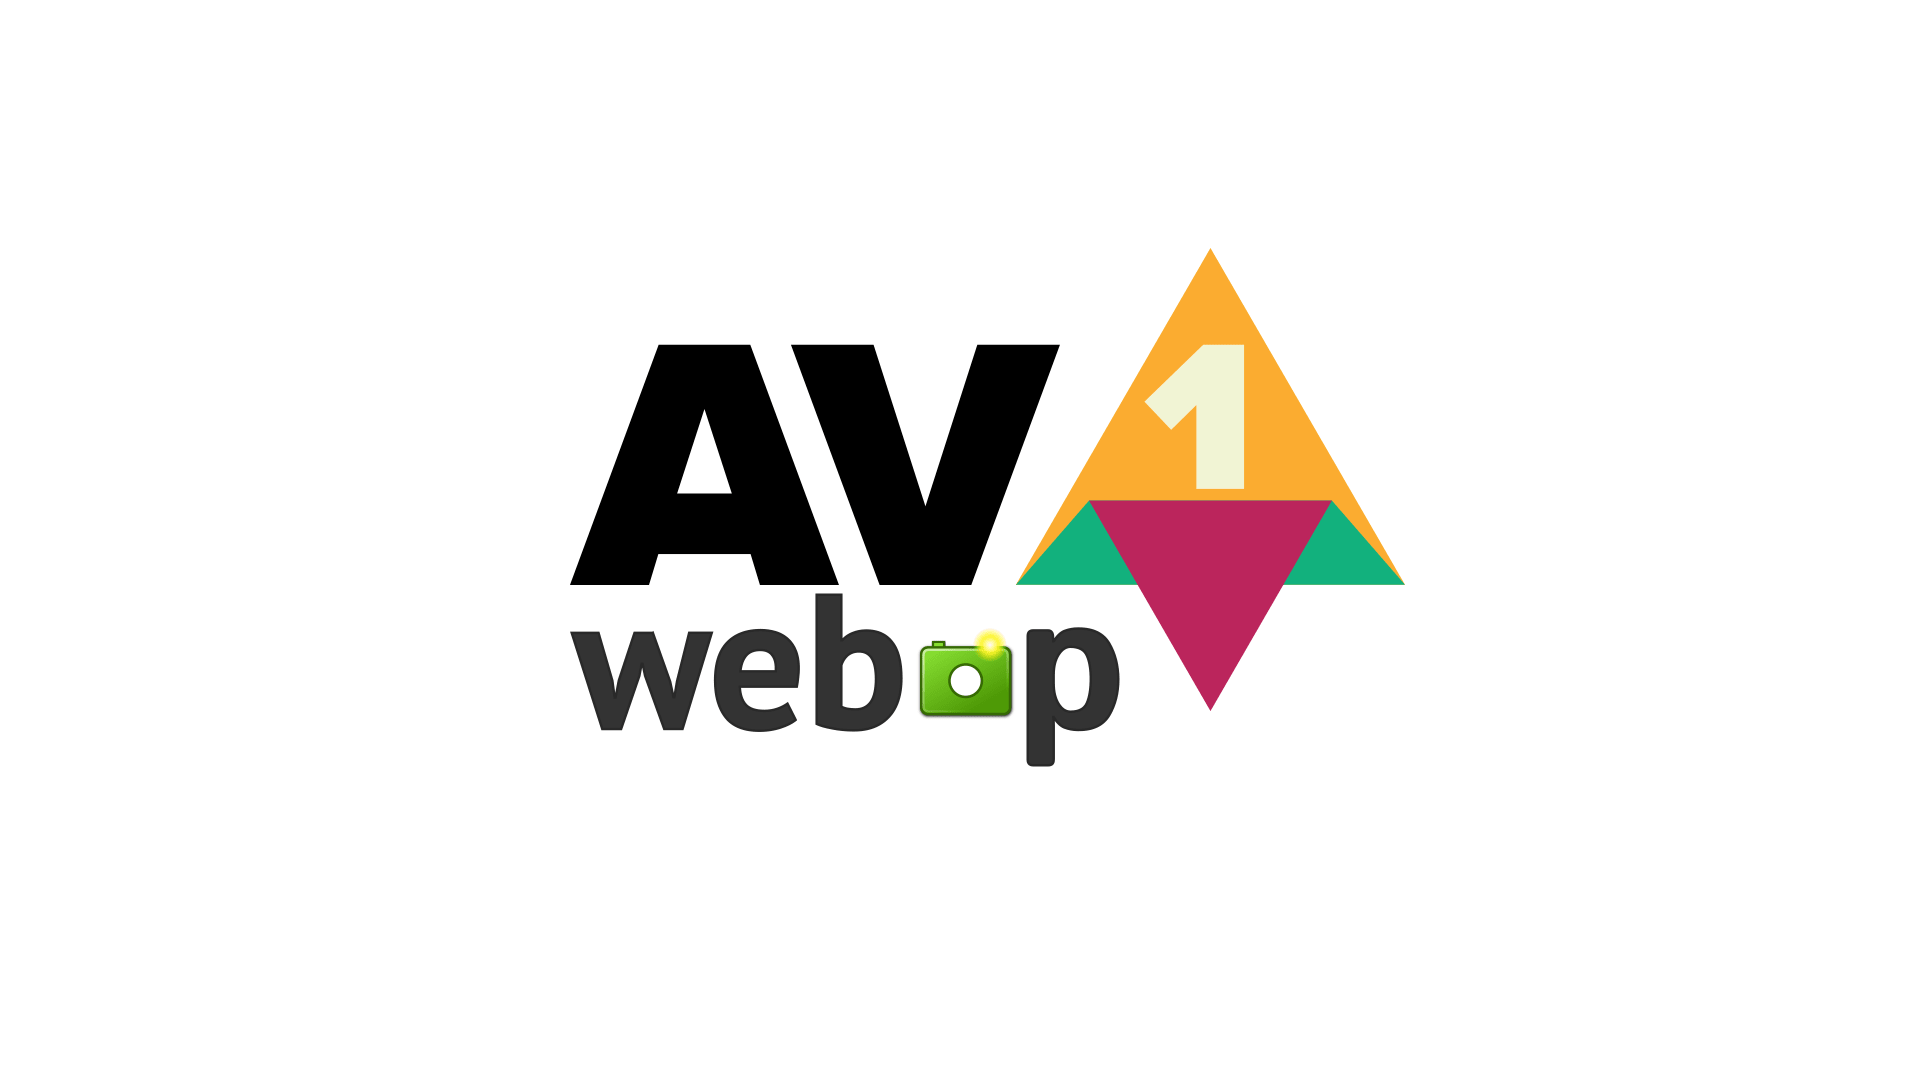 Not so fast with AVIF, WebP is still the way